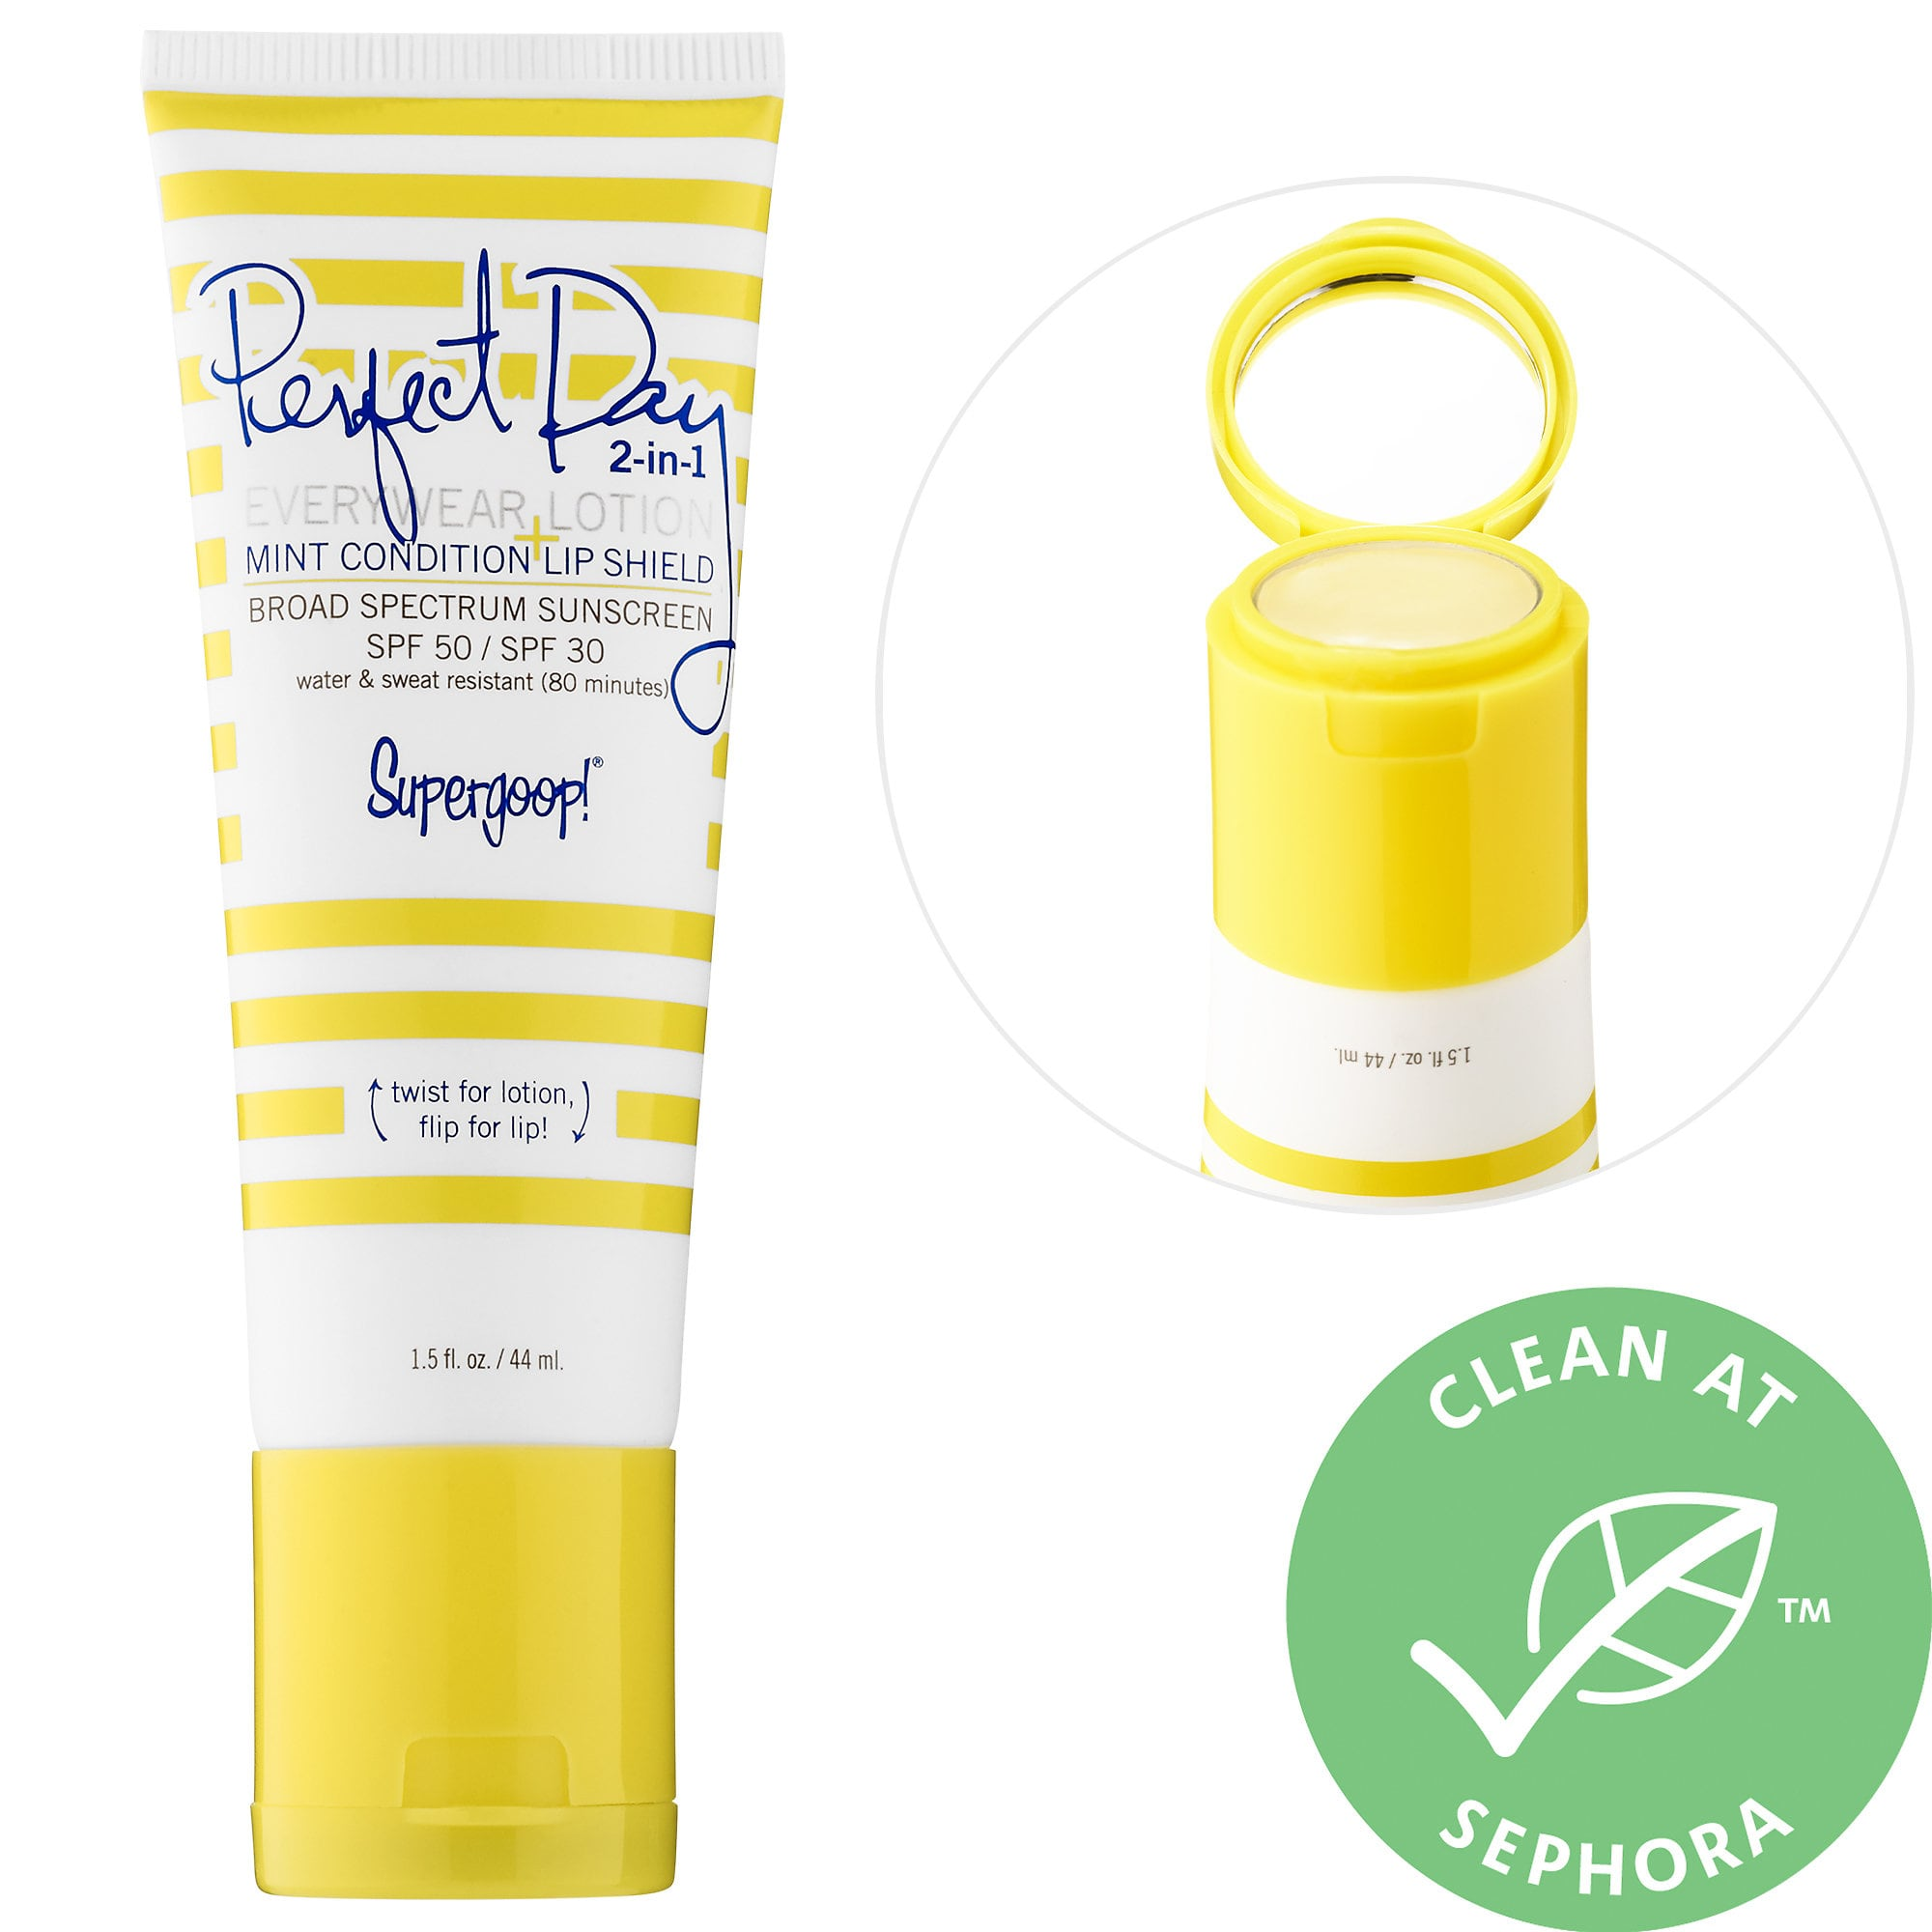 Perfect Day 2-in-1 Everywear Lotion Broad Spectrum SPF 50 + Mint Condition Lip Shield SPF 30